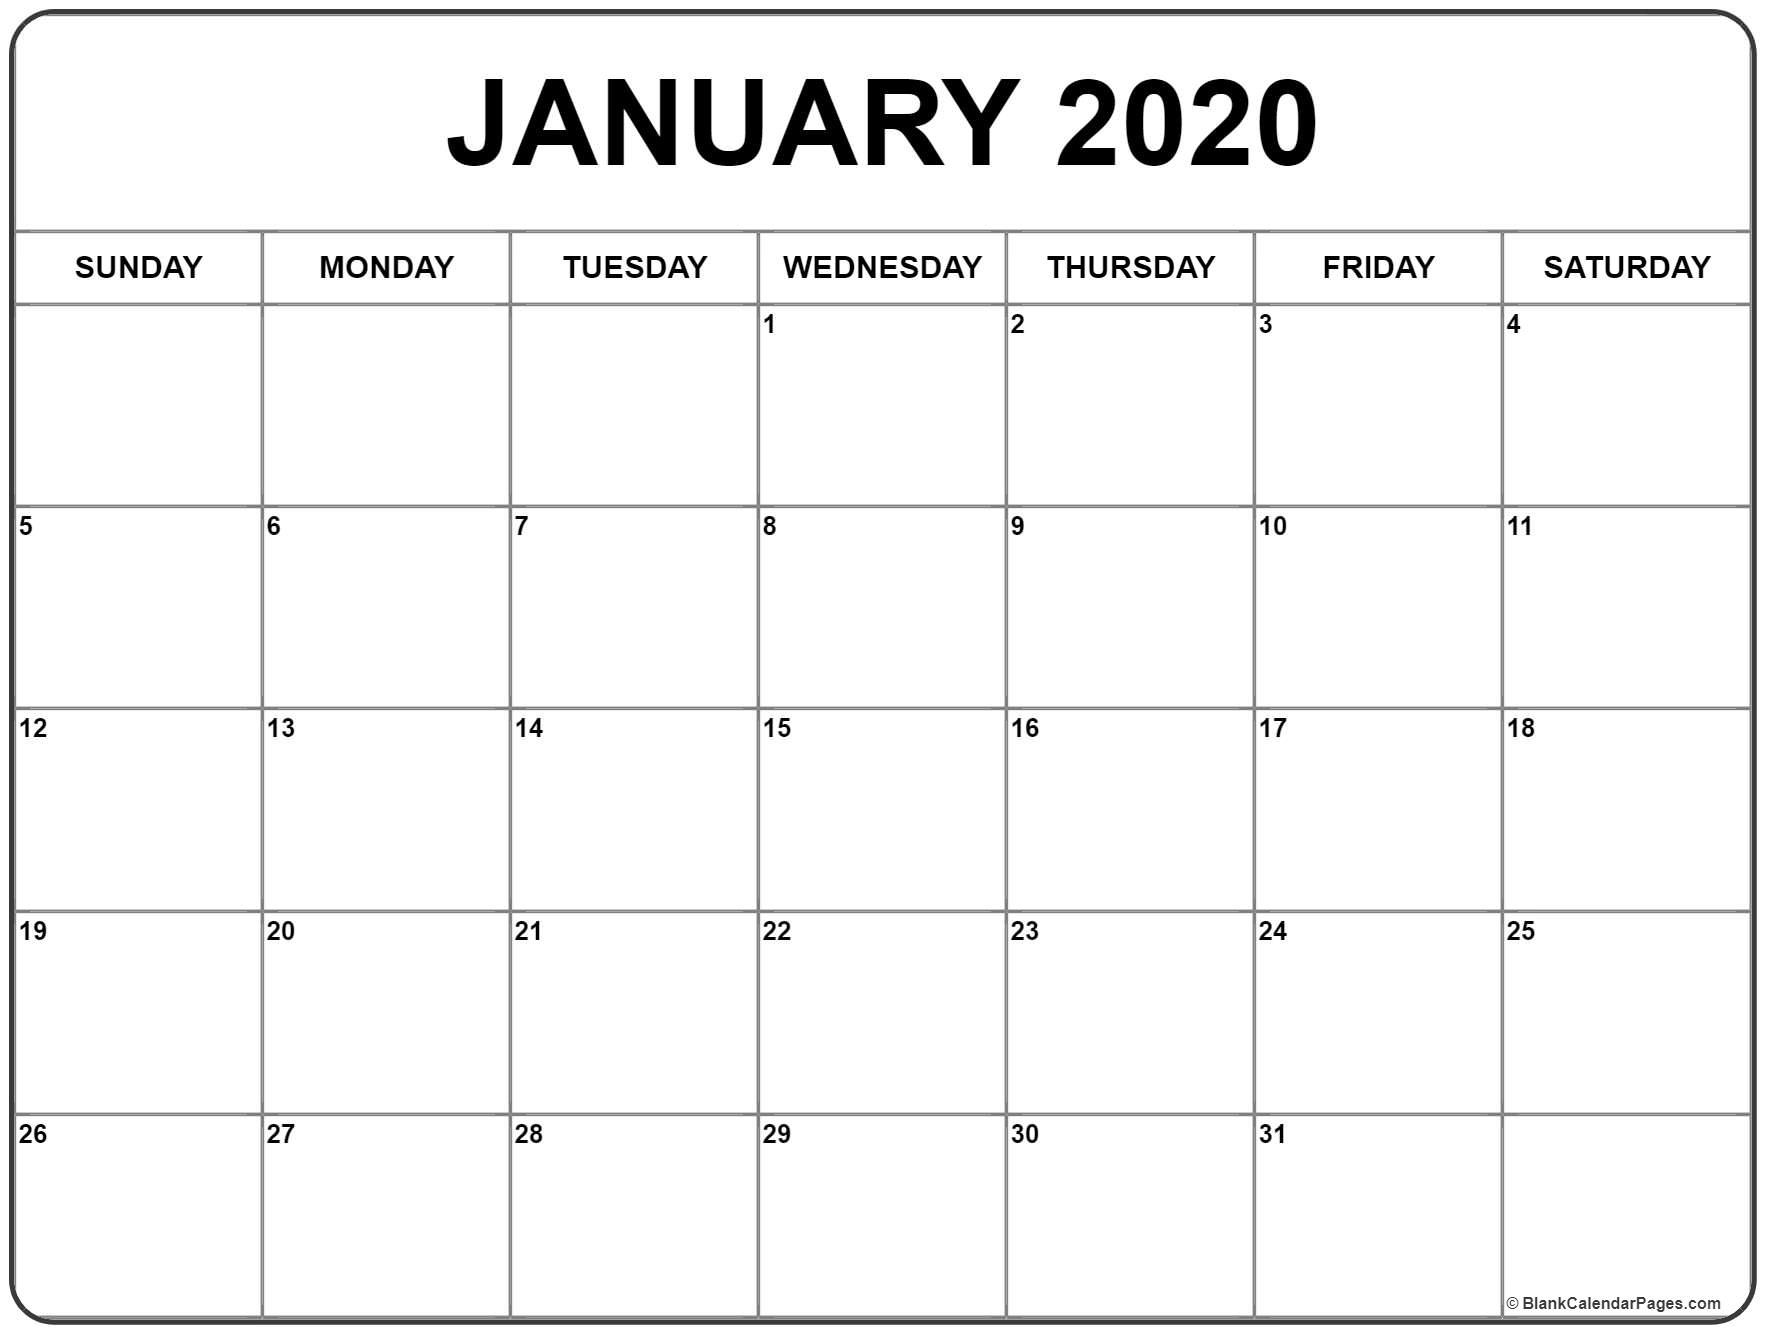 Calendar 2020 Printable Calendar Starting With Monday - Calendar within 2020 Printable Liturgical Calendar Free